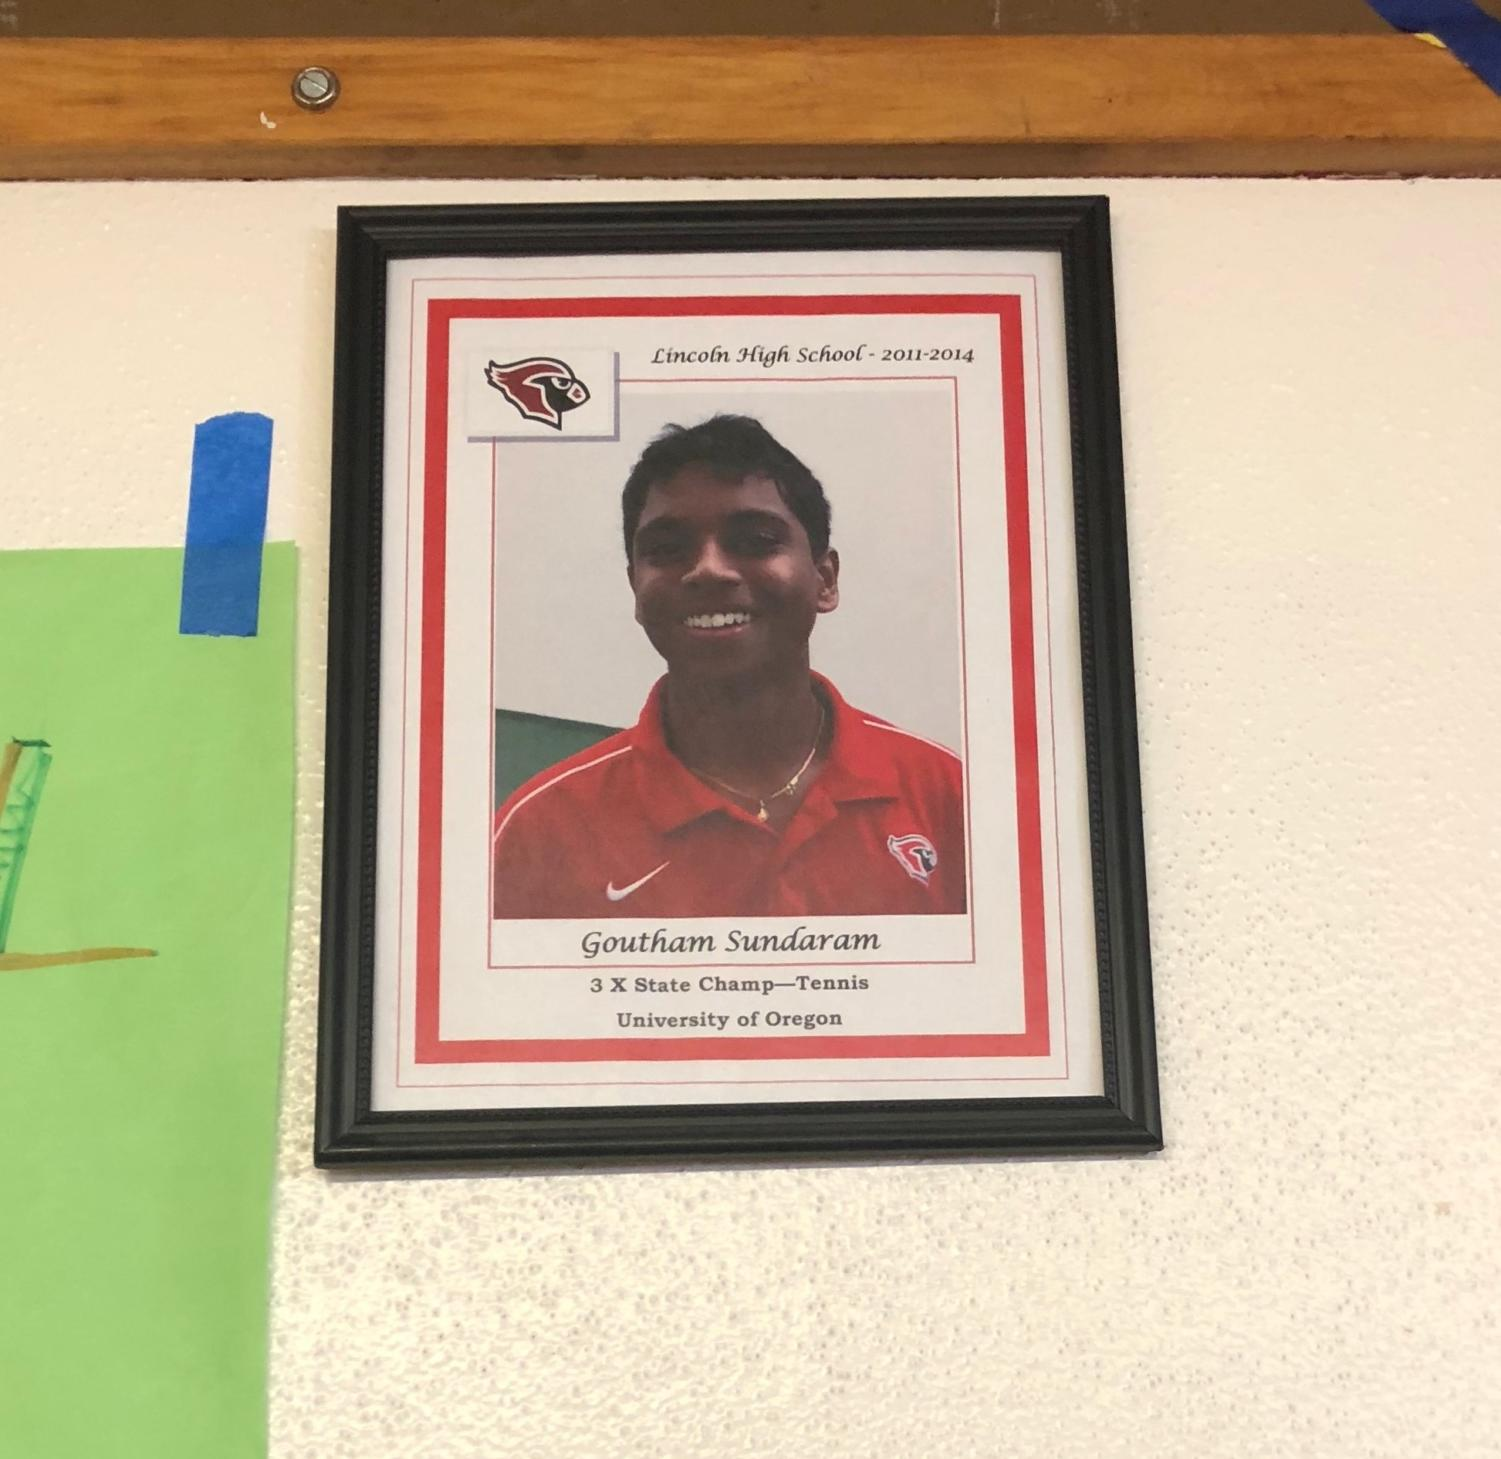 The plaque in question is located in Lincoln's athletic hall of fame, above the entrance to the gym. Tennis player Goutham Sundaram's plaque may be removed after he gave a speech at the University of Portland that many found offensive.